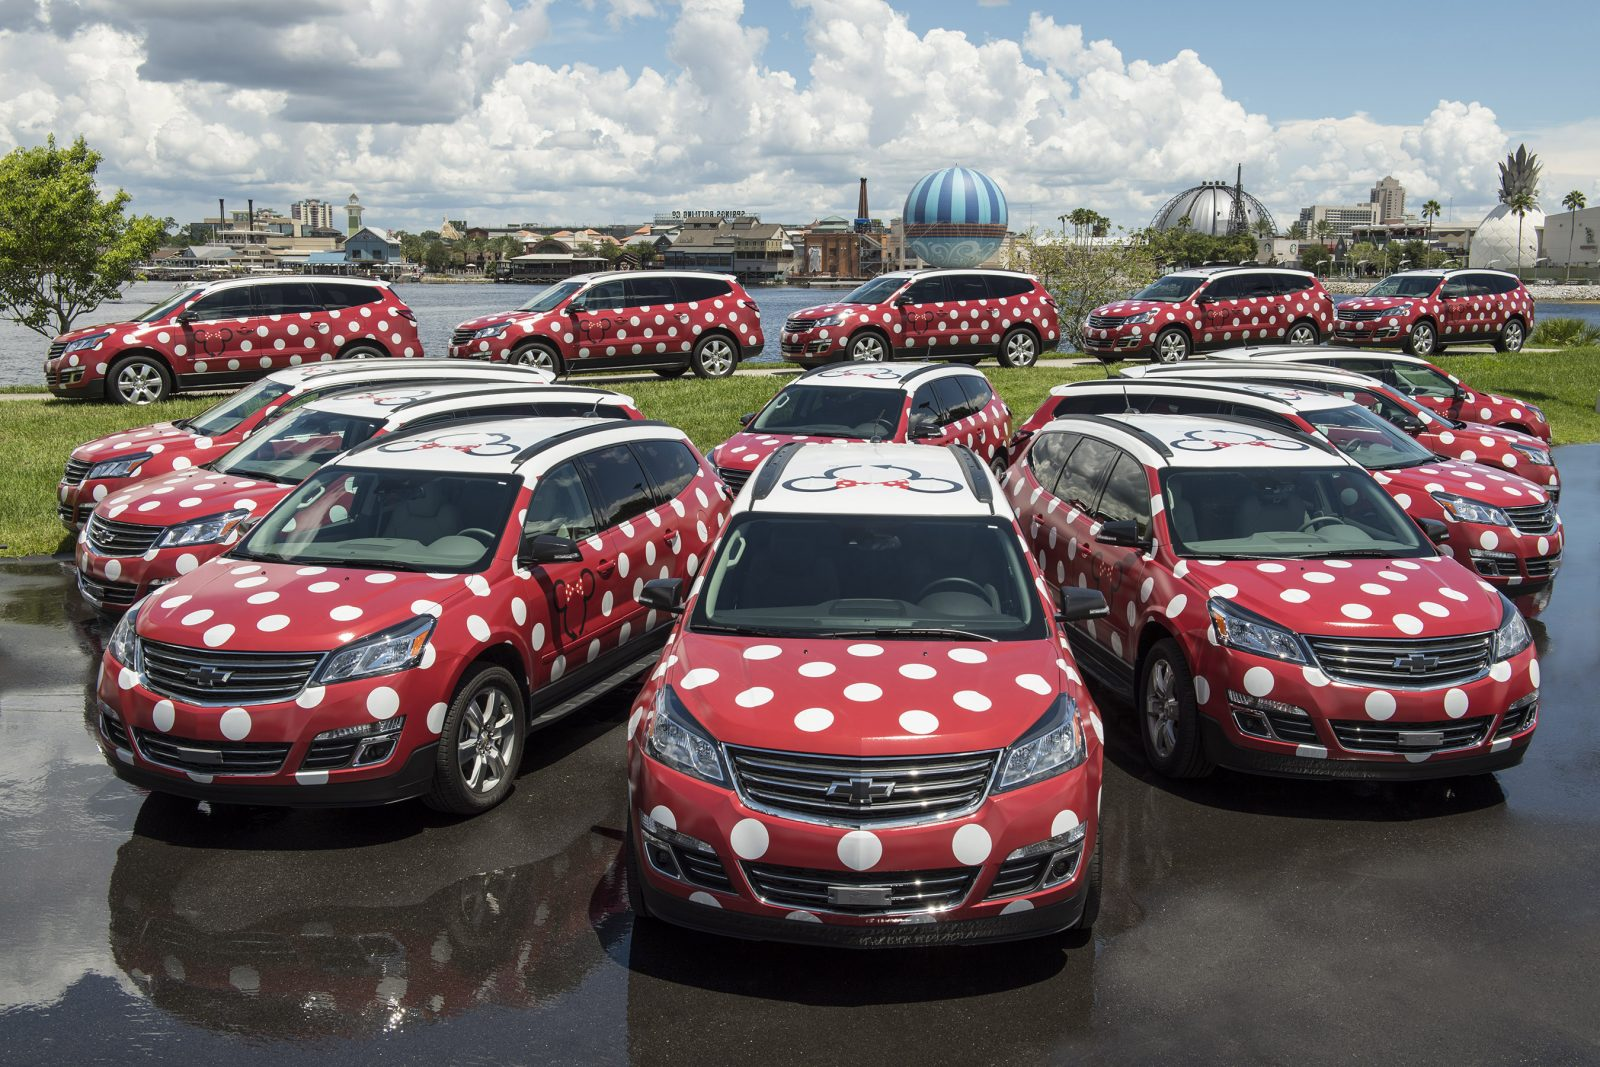 photo of a fleet of red vans with white Minnie spots; tipping at Disney